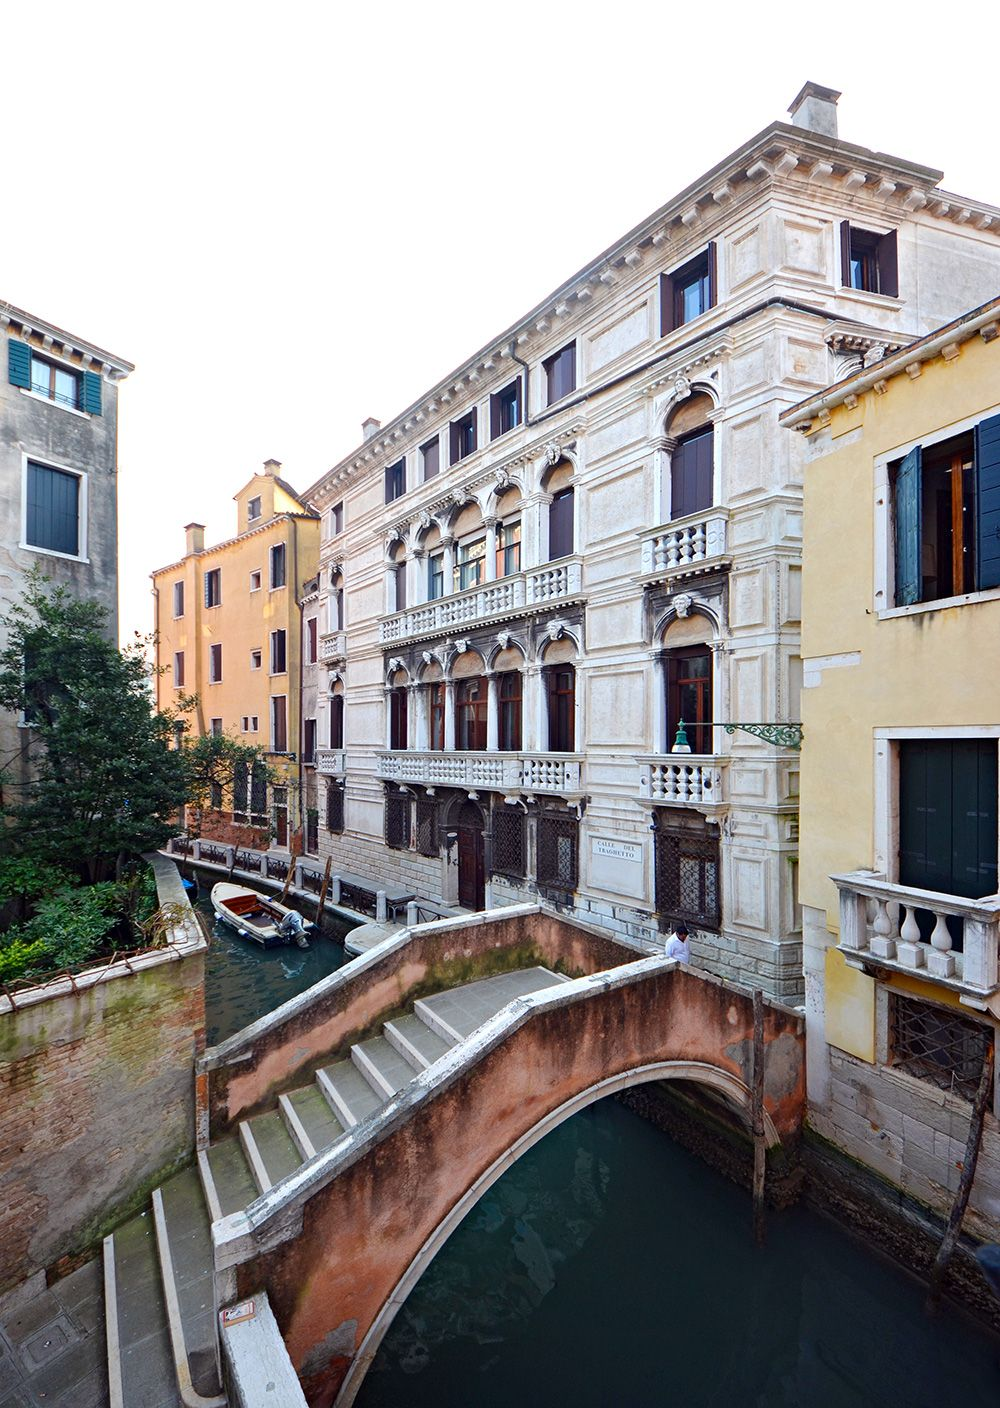 the view from this room is truly Venetian!